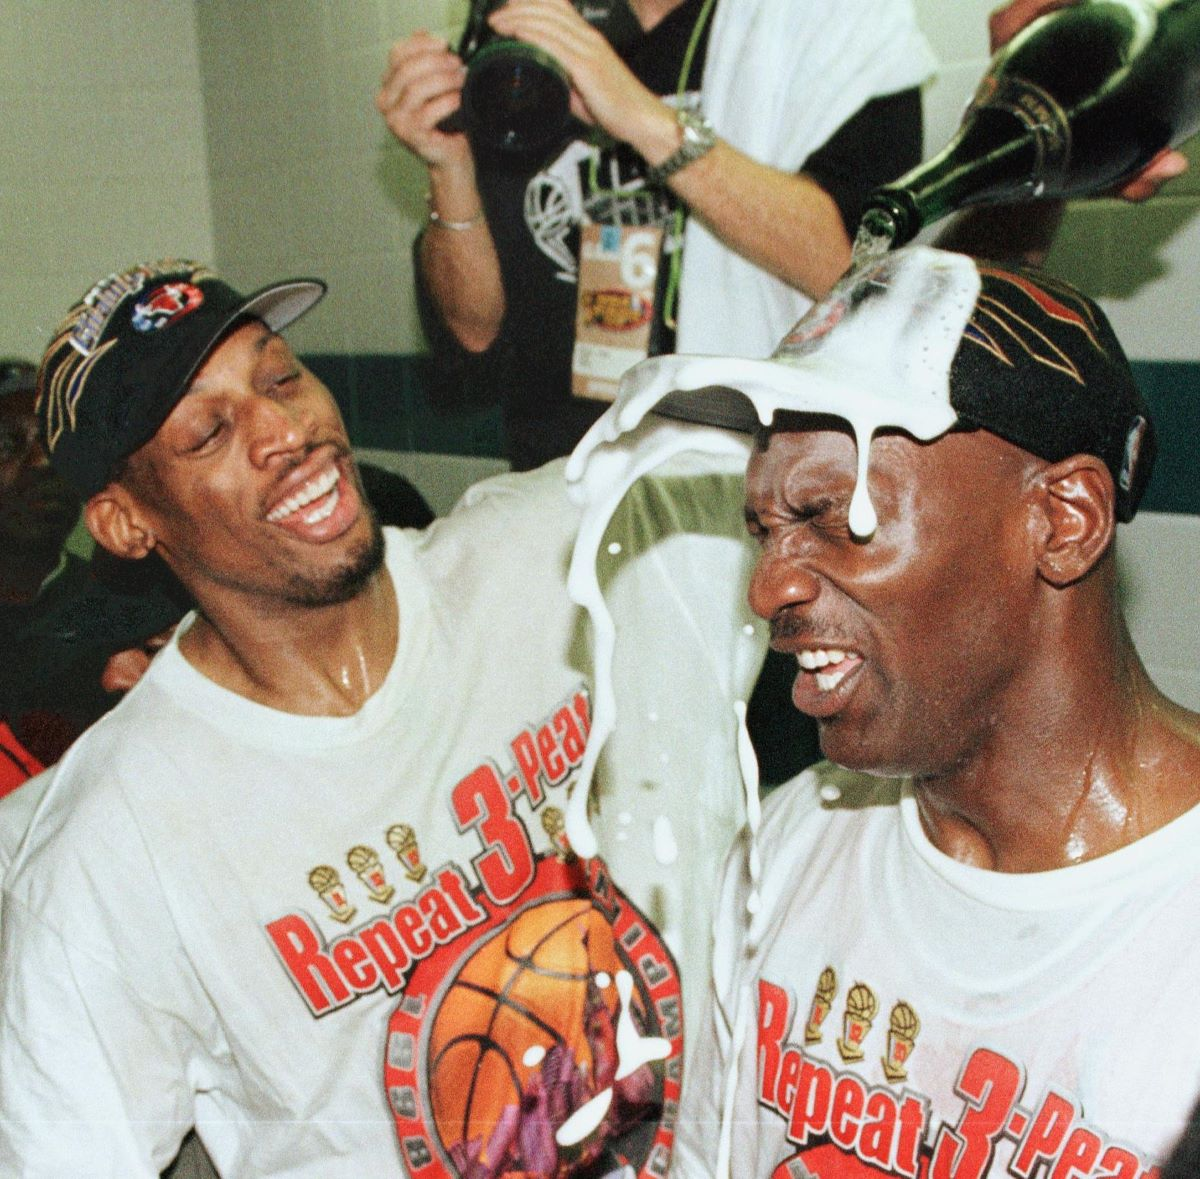 Michael Jordan and Dennis Rodman Never Spoke to Each Other in Public Even if They Were at the Same Restaurant